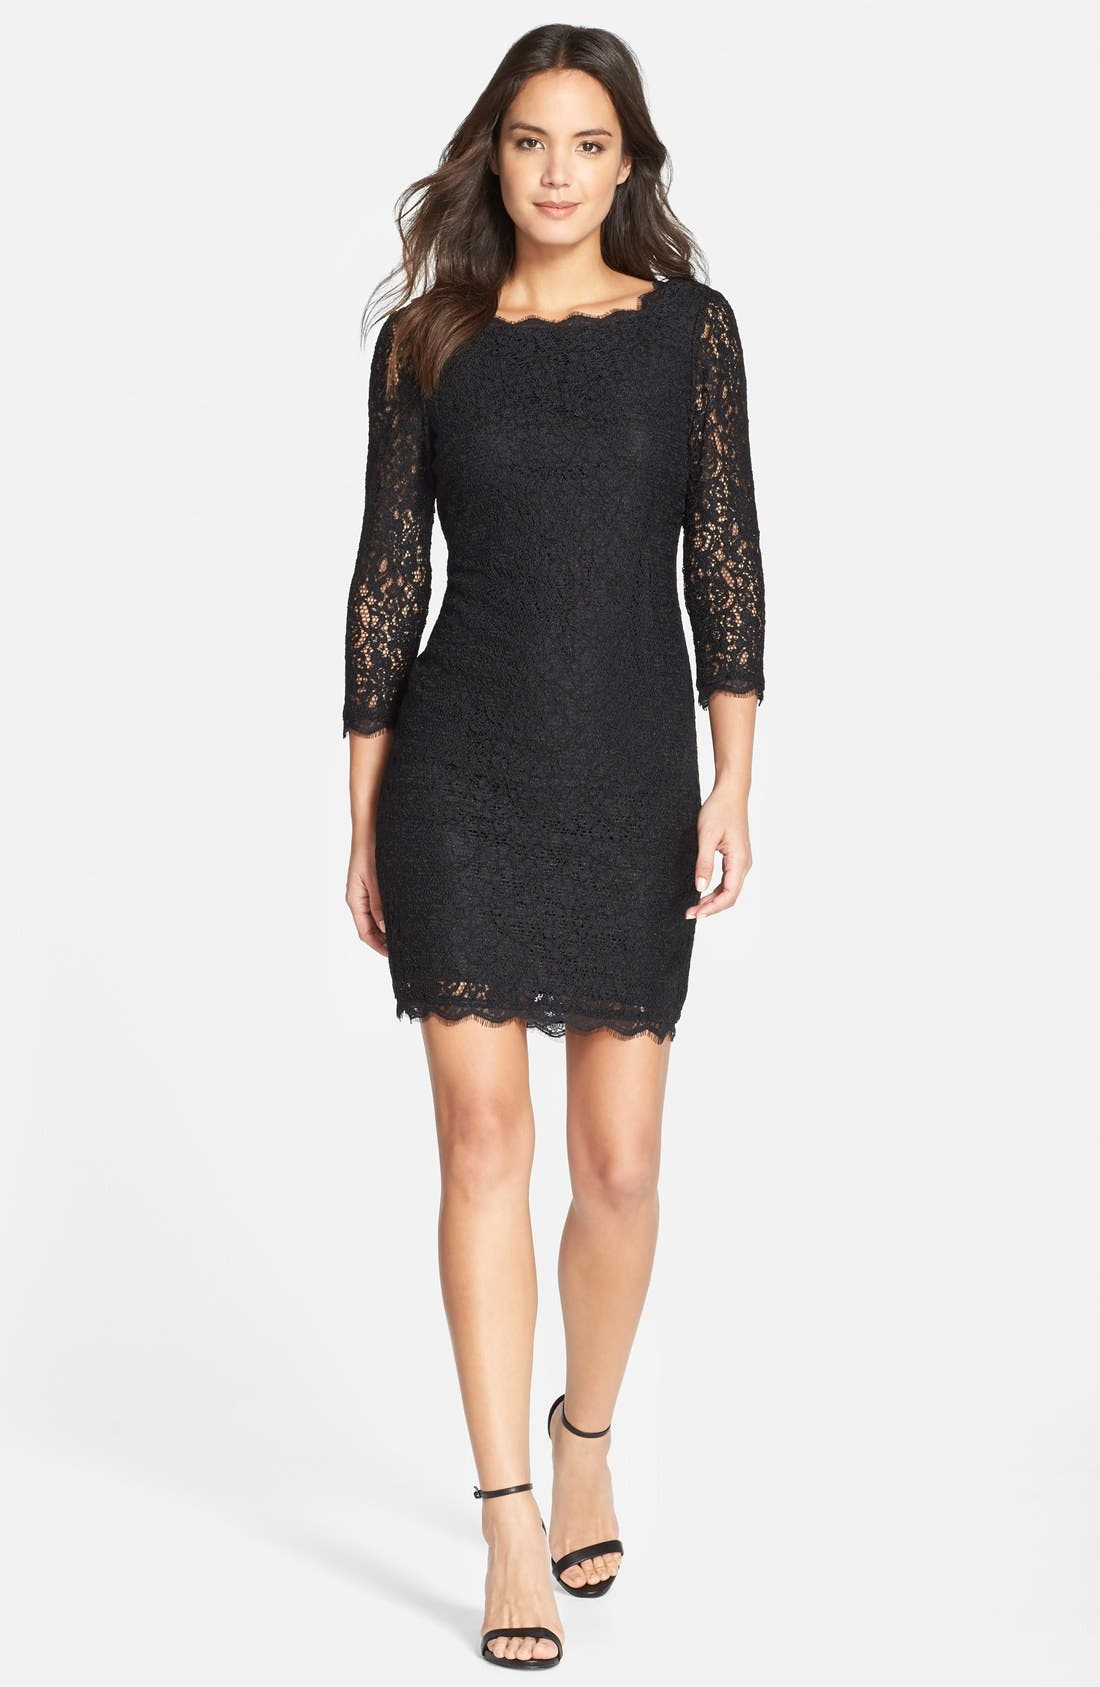 Lace Overlay Sheath Dress,                             Alternate thumbnail 10, color,                             001